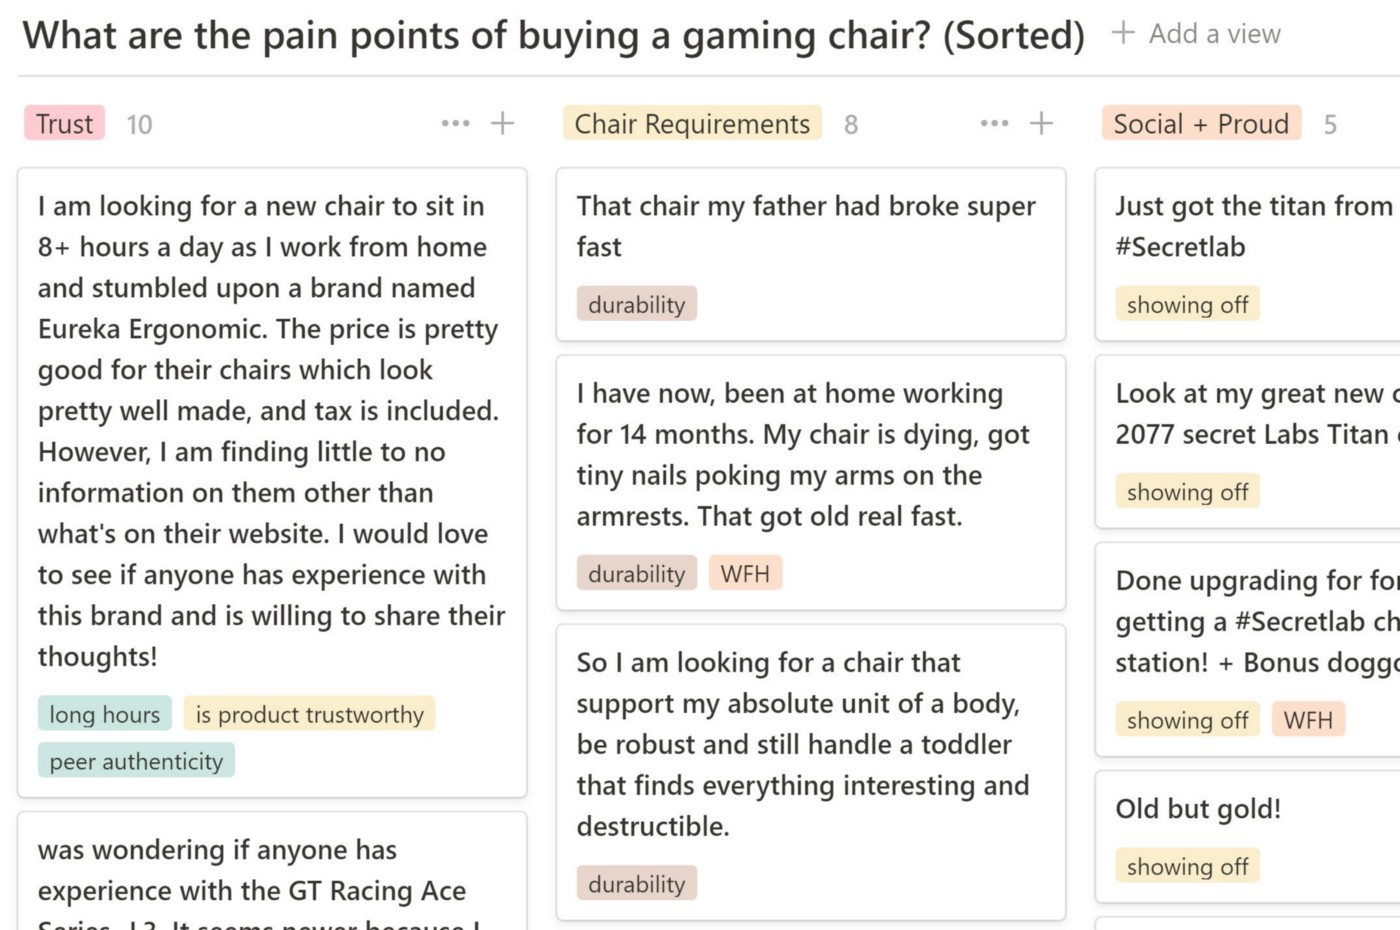 """A series of cards organized vertically. Each card highlights a specific phrase from the Reddit posts relevant to our research question of """"what are pain points of buying a gaming chair?"""""""